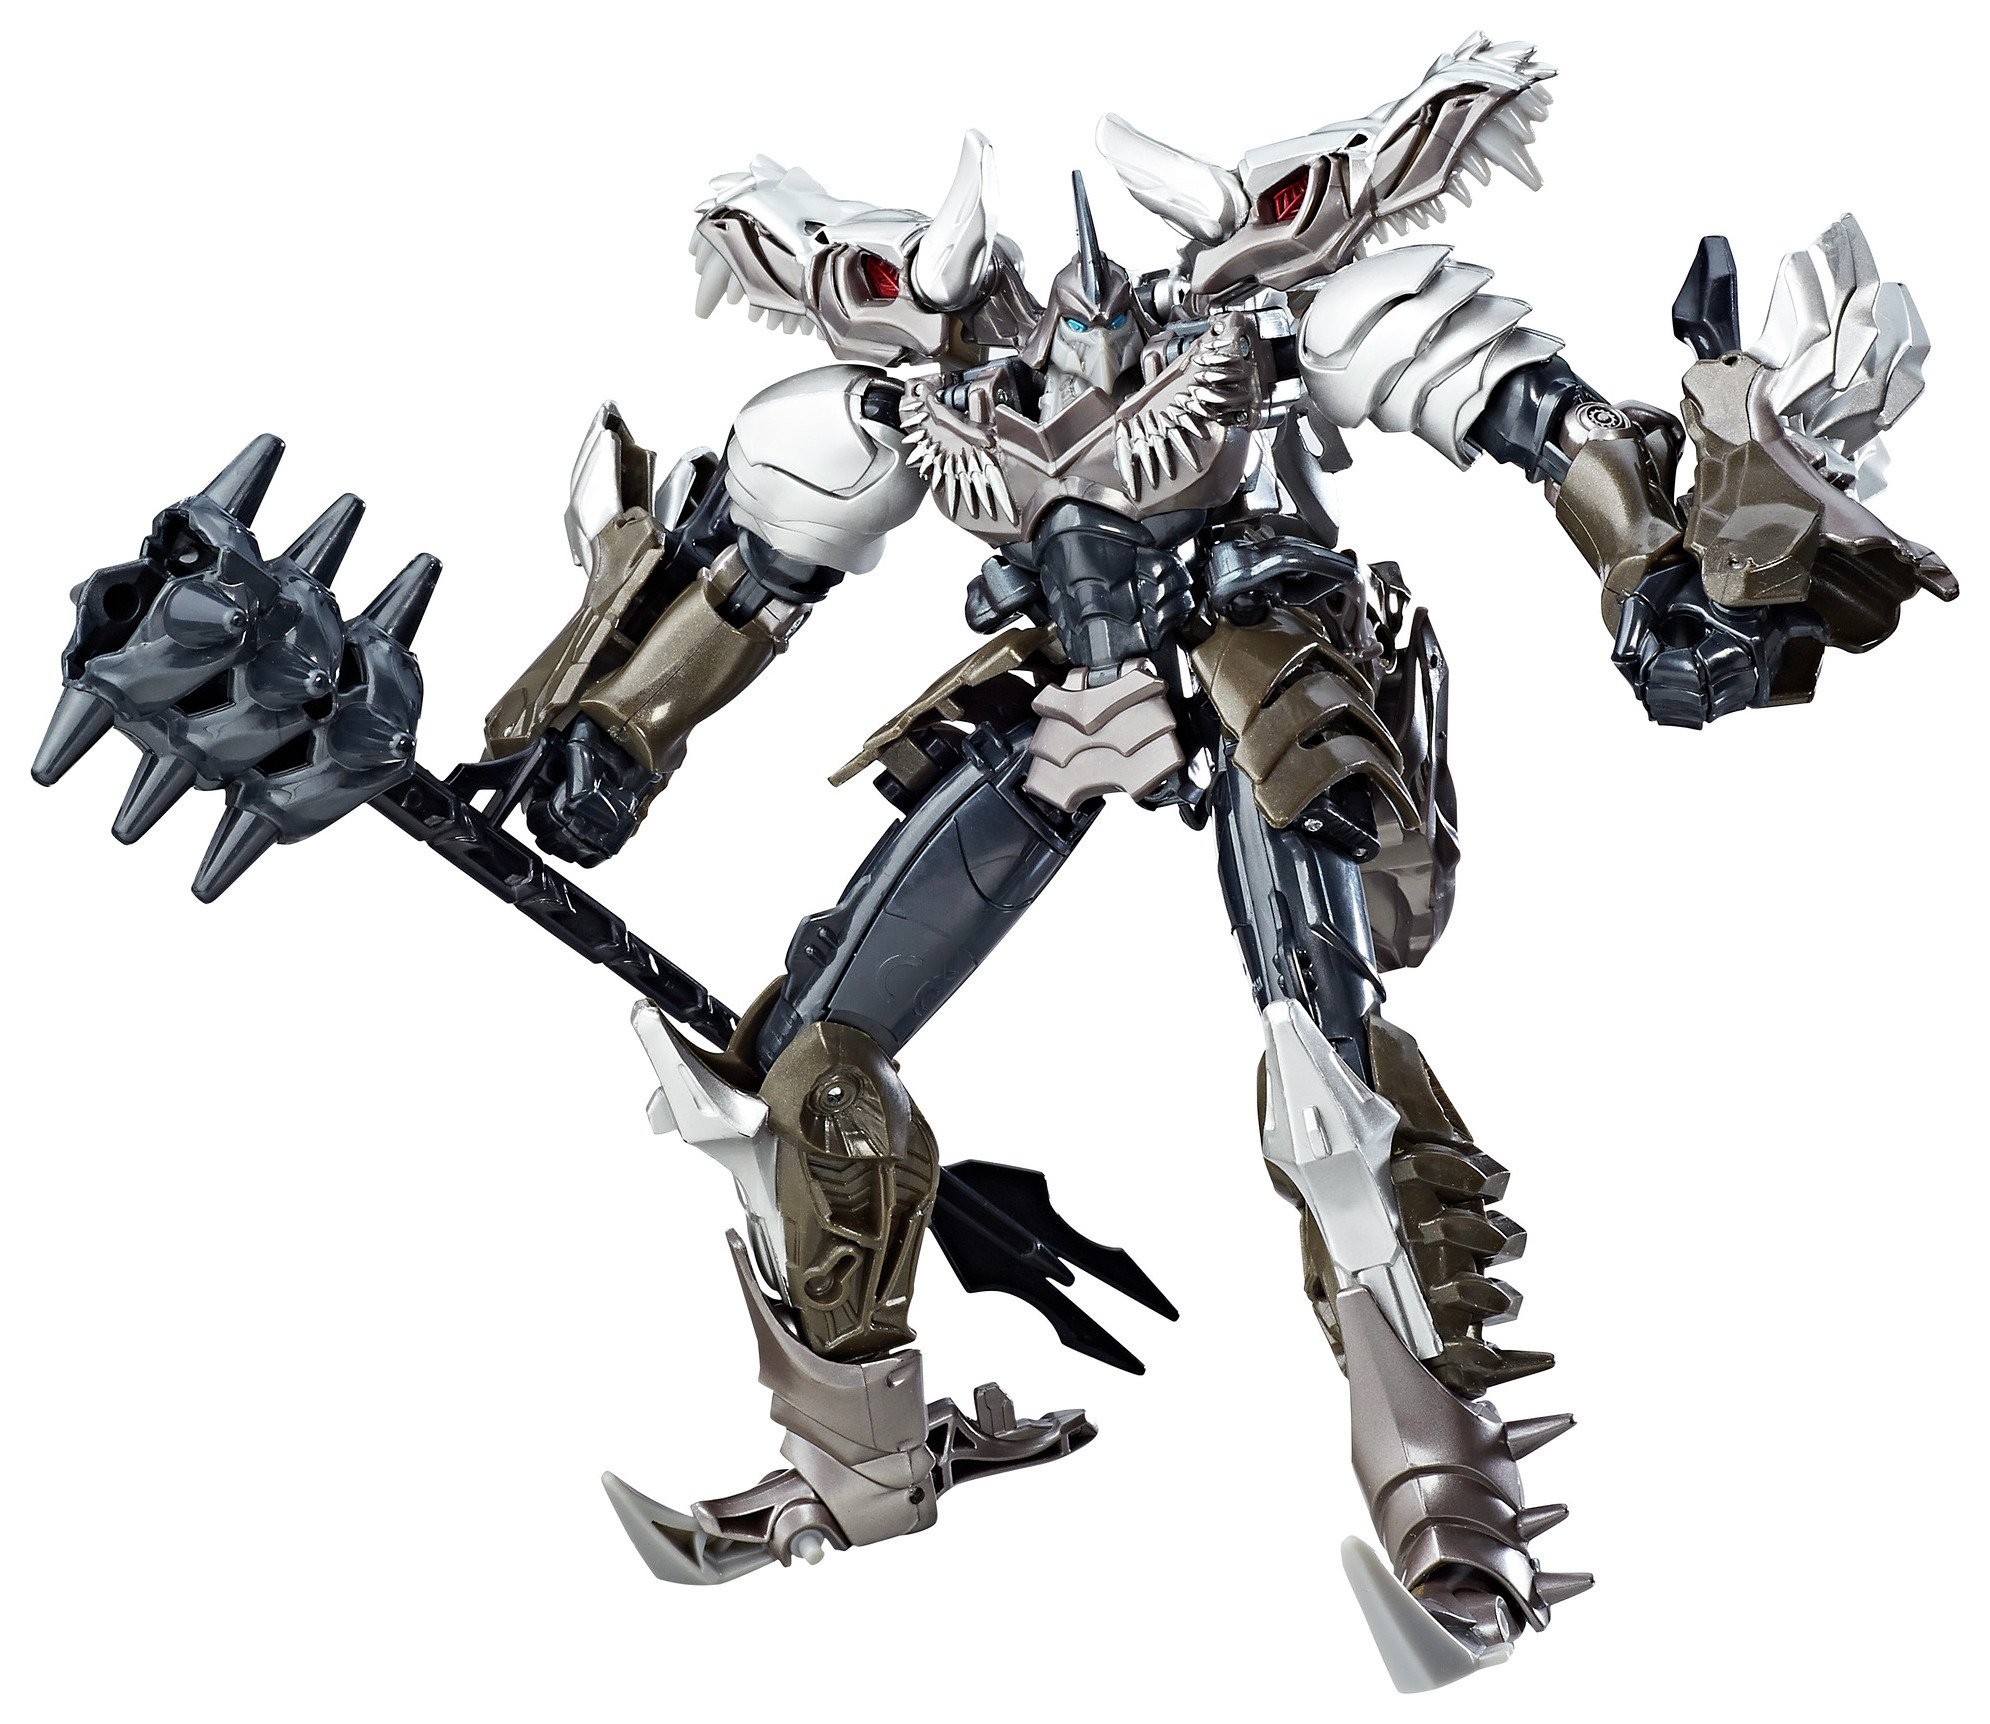 Image of Transformers Premier Edition Voyager Class Grimlock